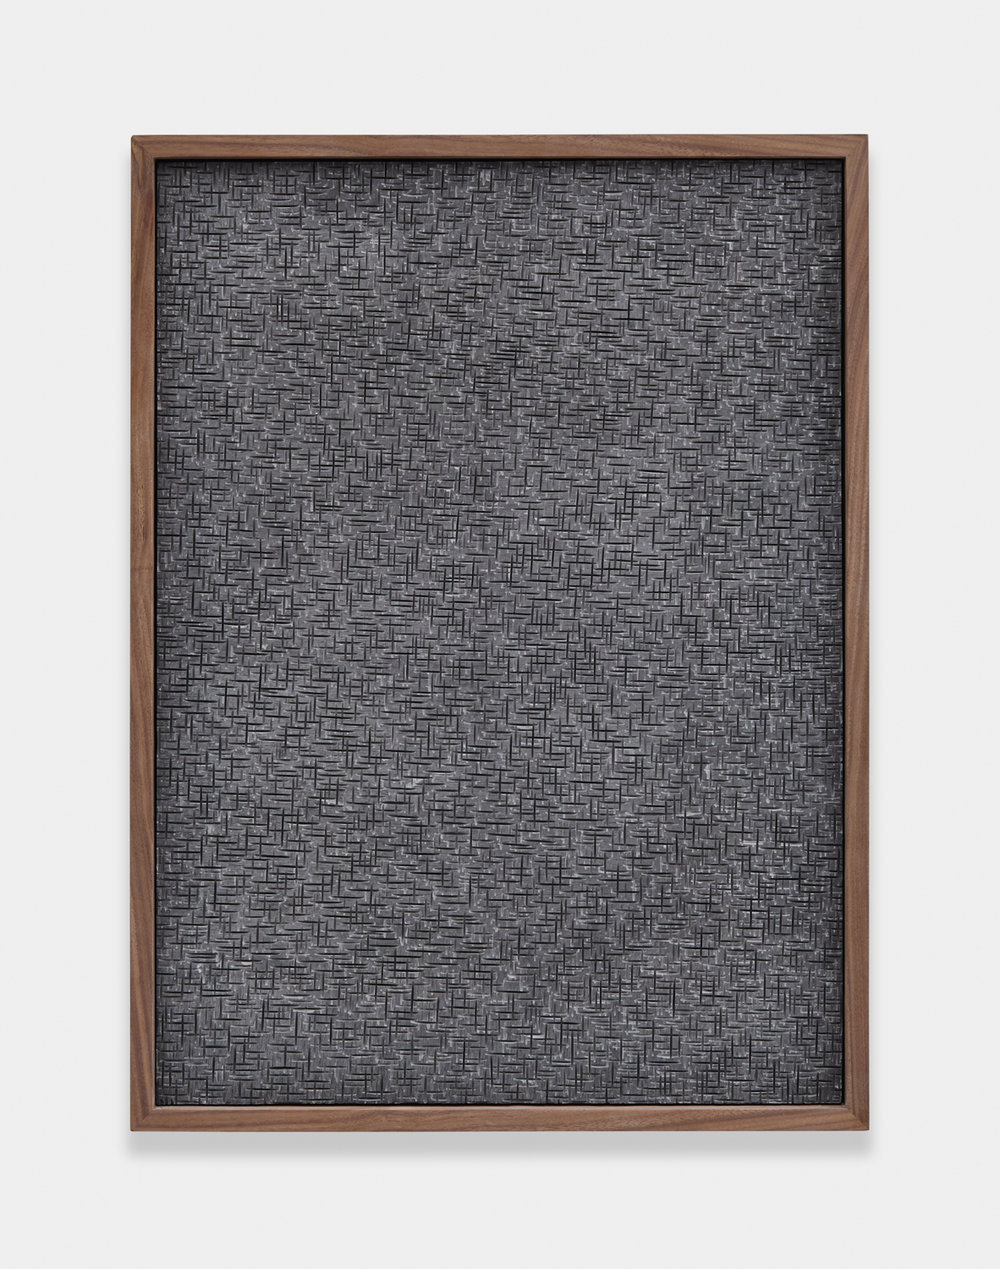 Anthony Pearson  Untitled (Etched Plaster)  2014 Pigmented Hydrocal in walnut frame 24 ½h x 18 ½w x 5 ¾d in AP359